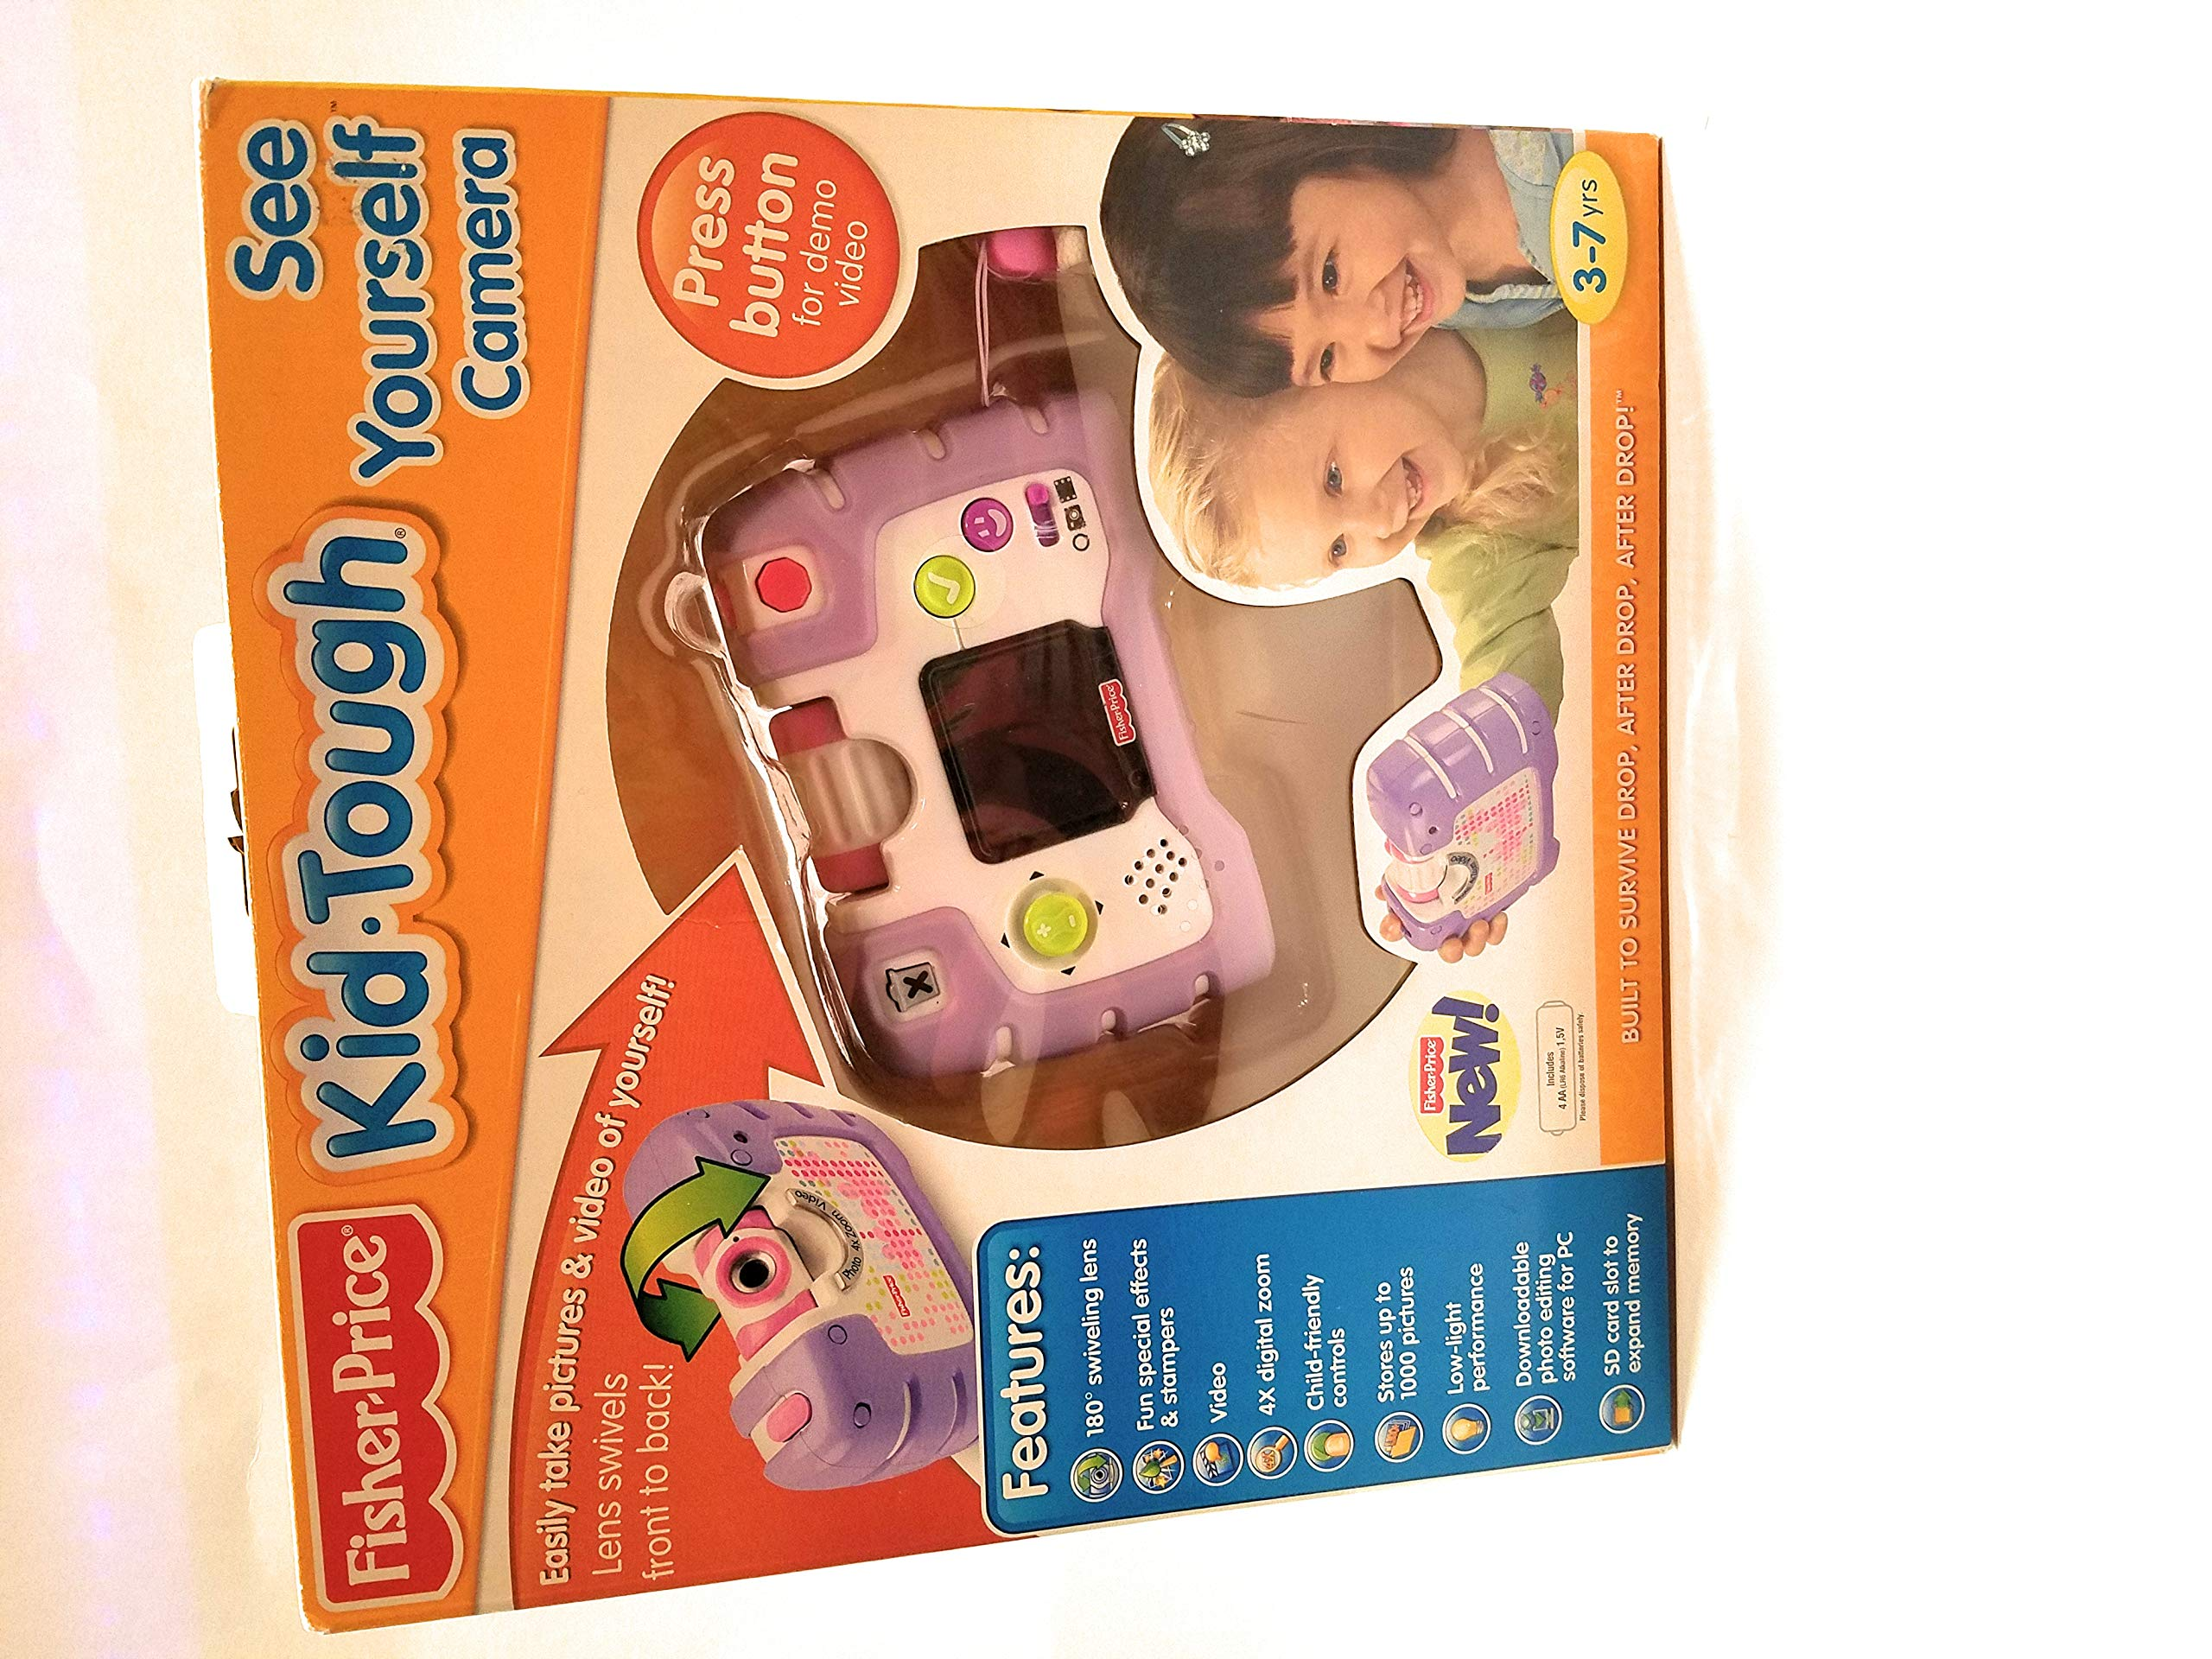 Fisher-Price Kid-Tough See Yourself Camera, Purple by Fisher-Price (Image #1)